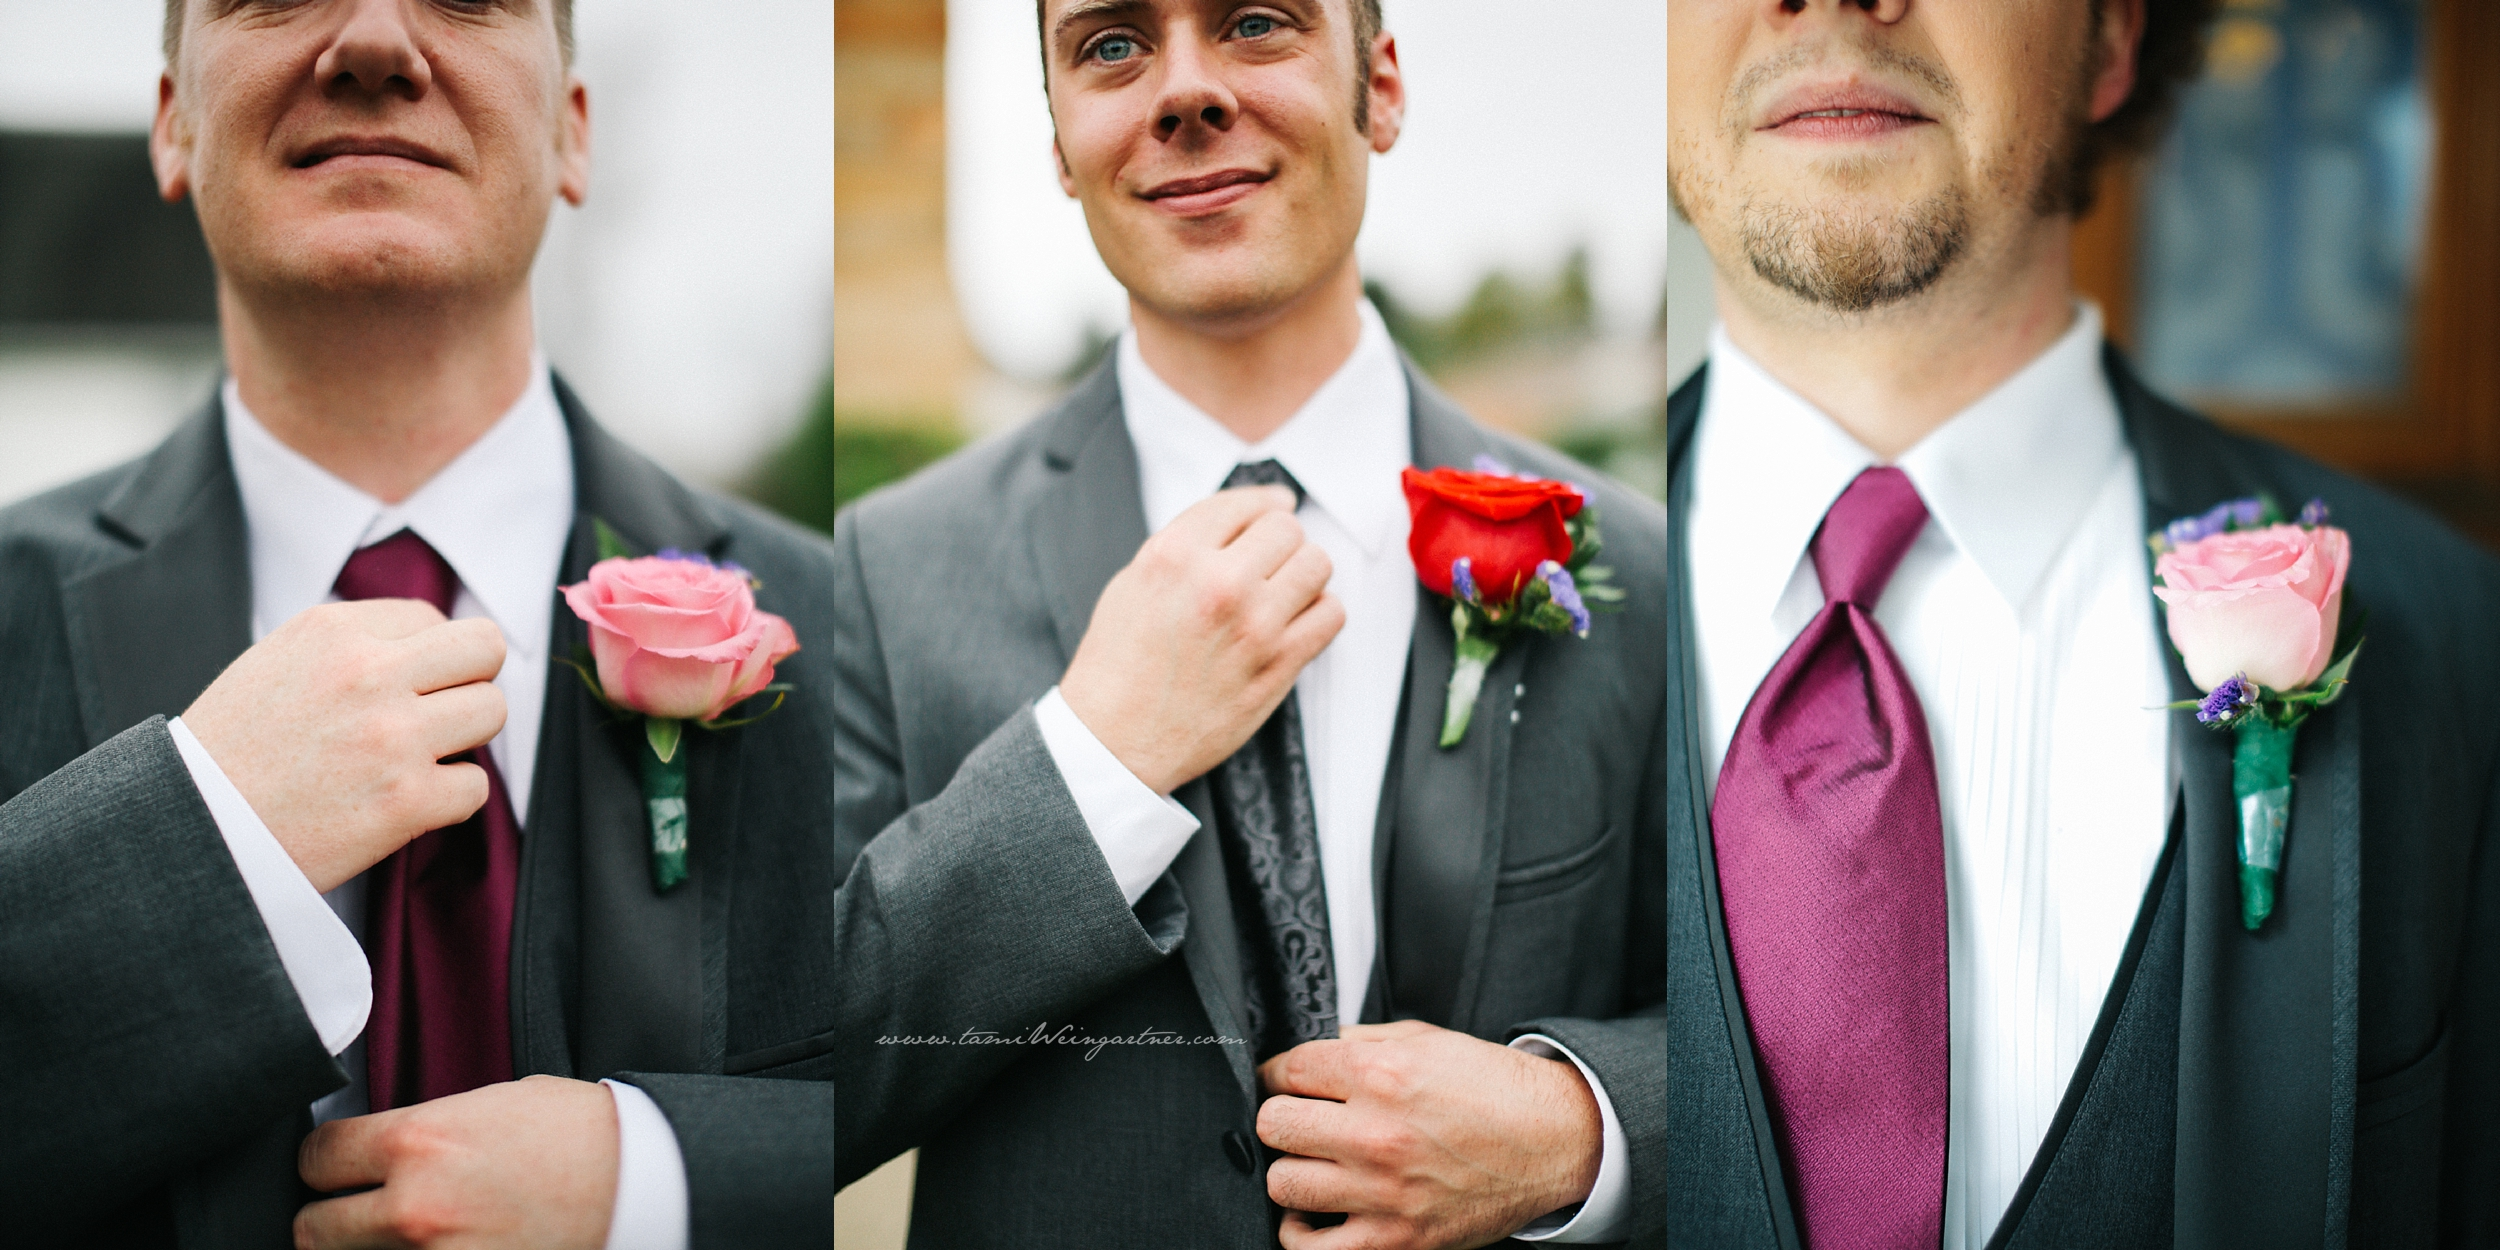 Groom and groomsmen tie variation photos